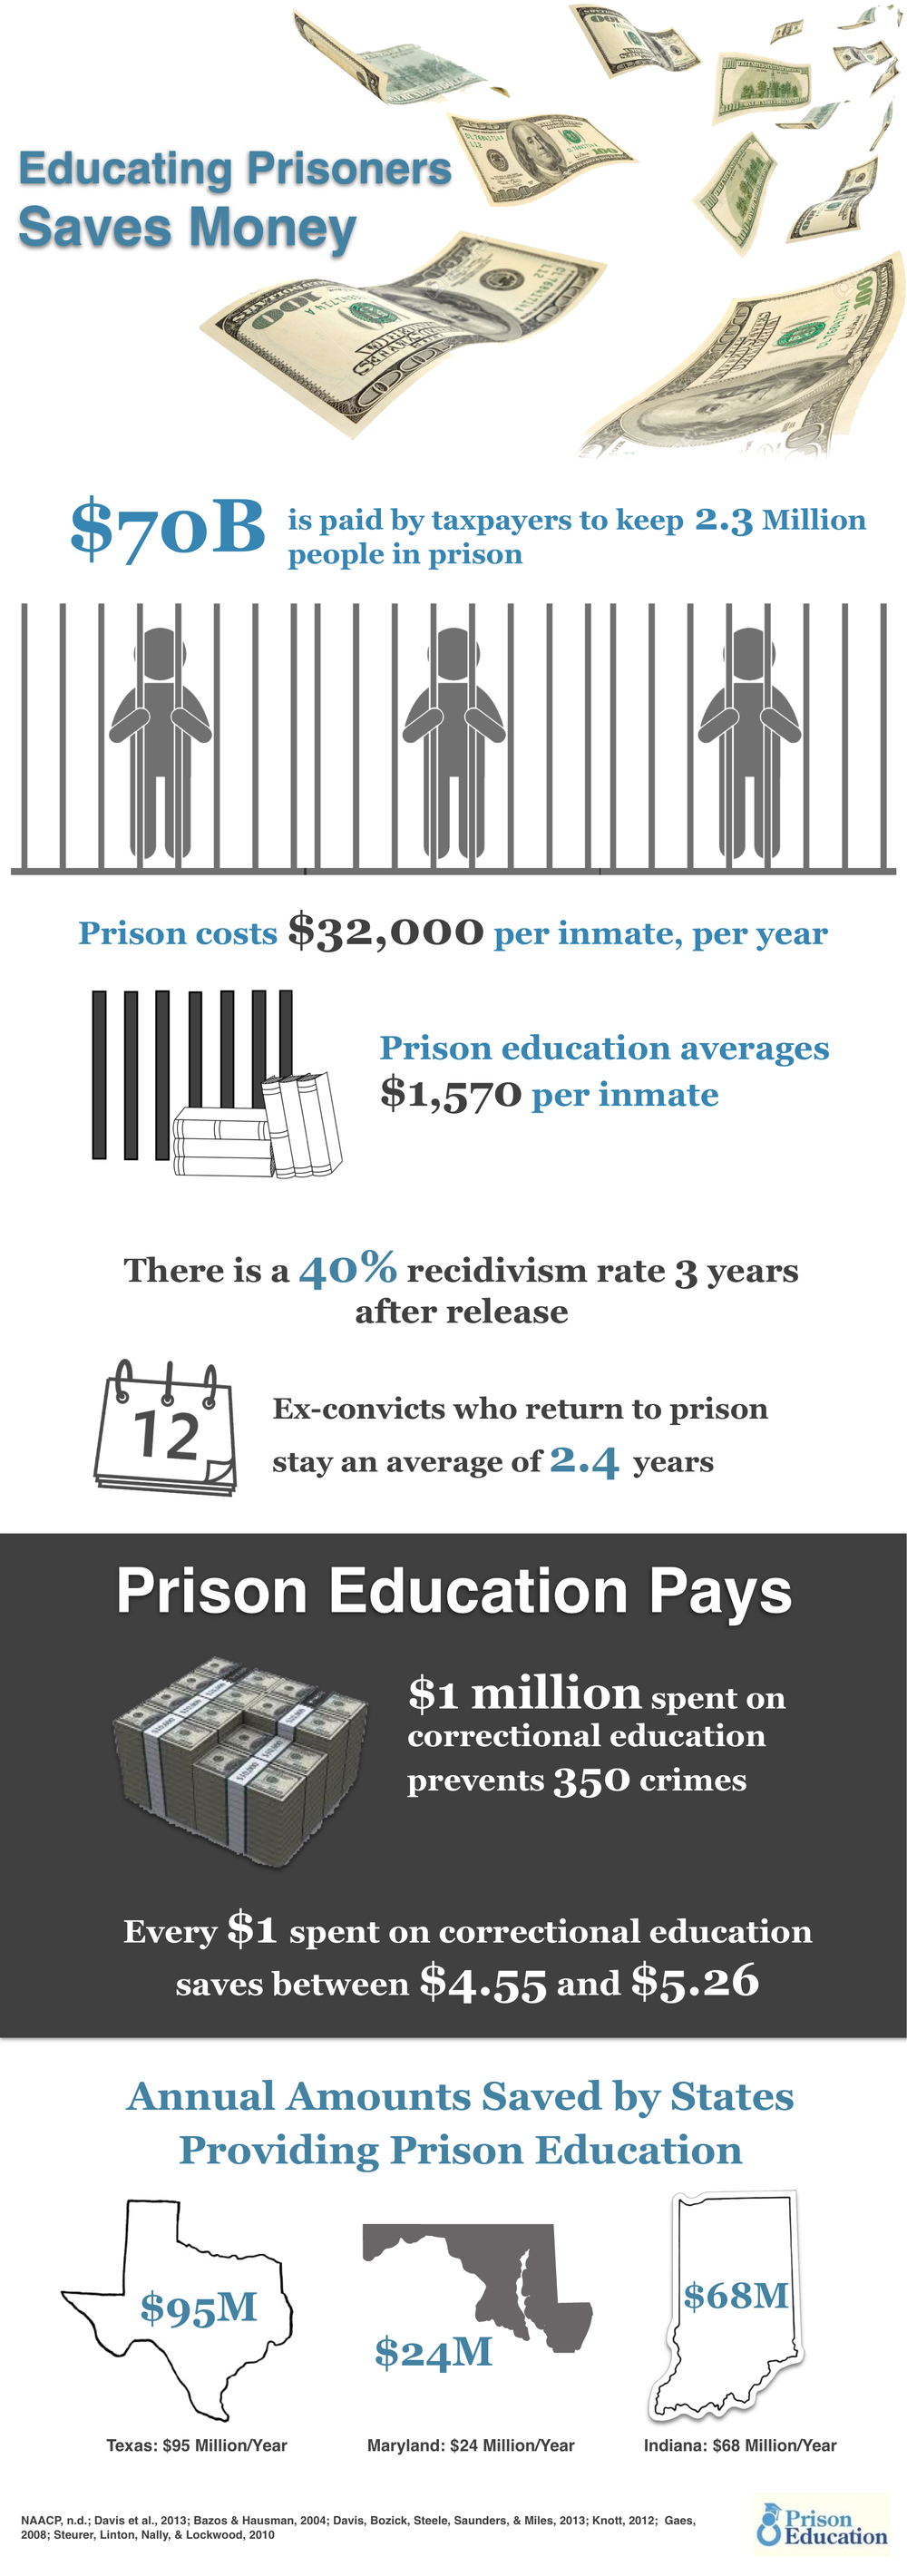 Studies prove that educating inmates saves money in prison costs.